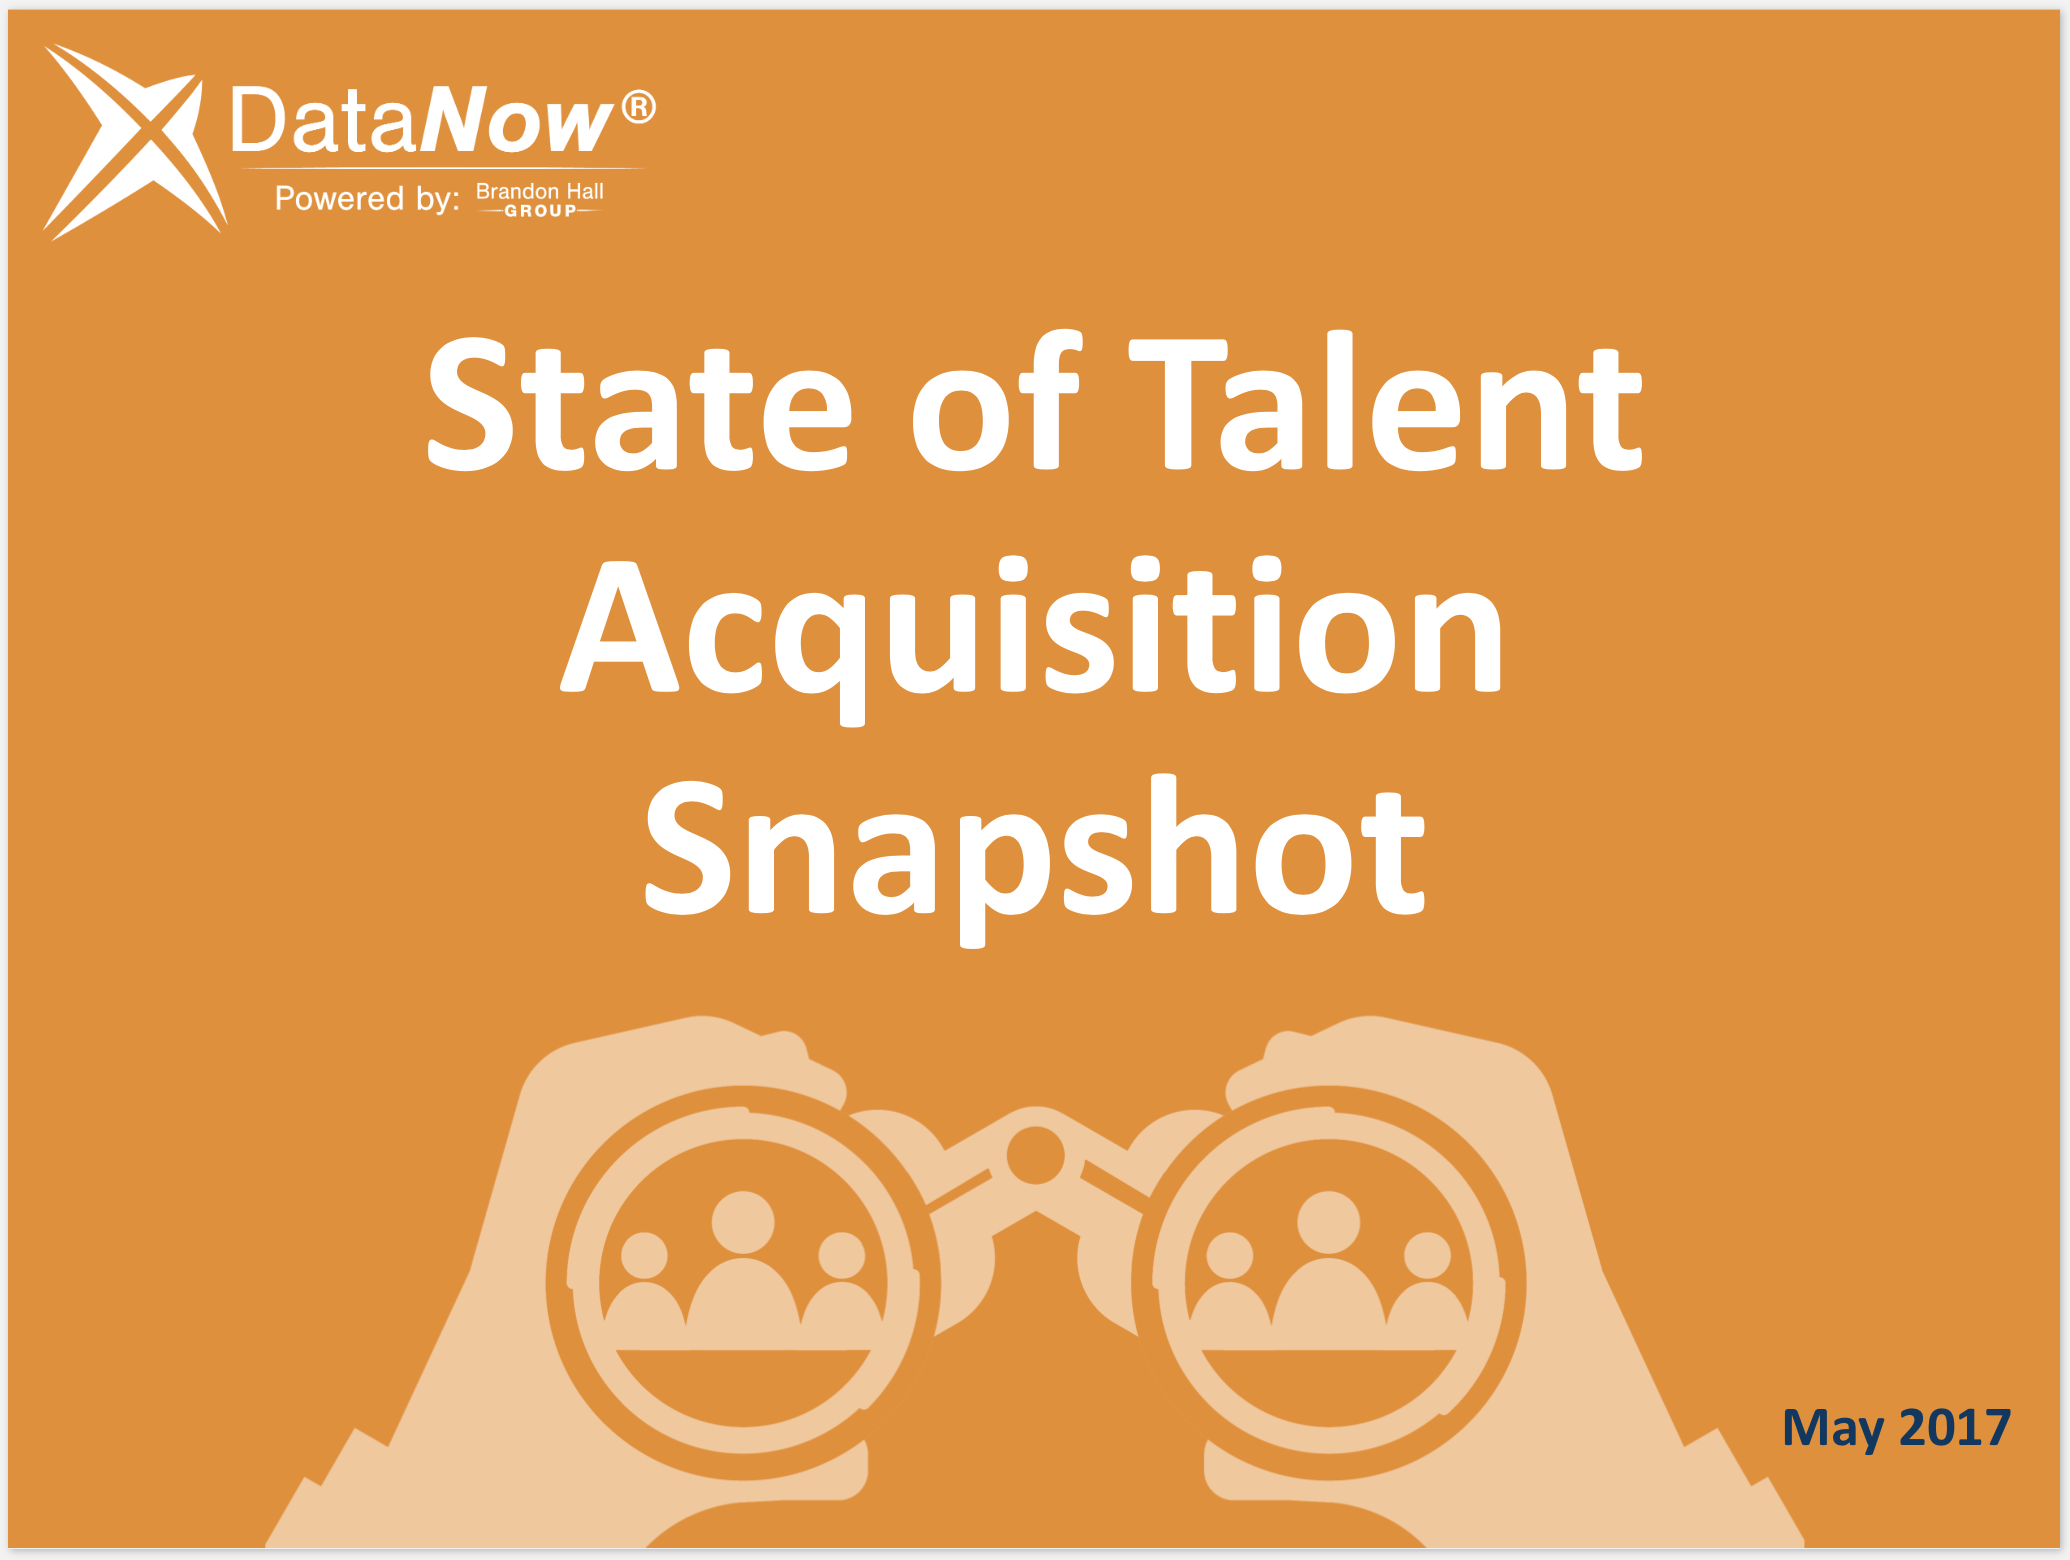 State of Talent Acquisition